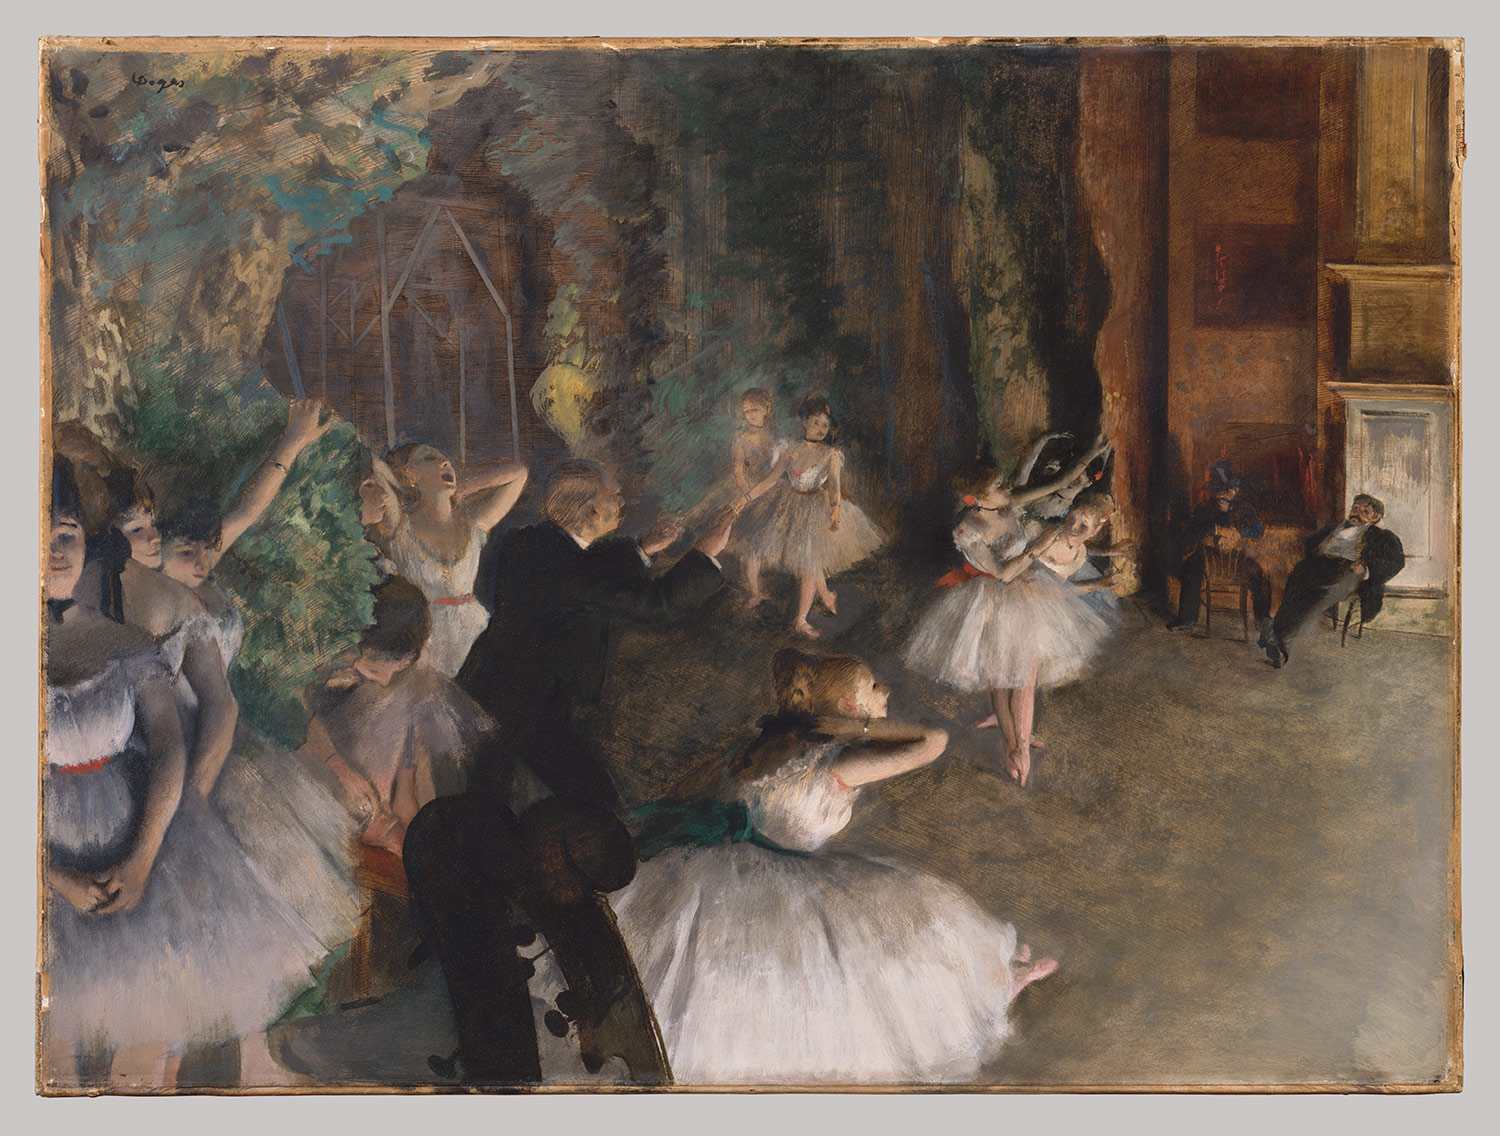 Prova Di Balletto Degas Edgar Degas The Rehearsal Of The Ballet Onstage 29 160